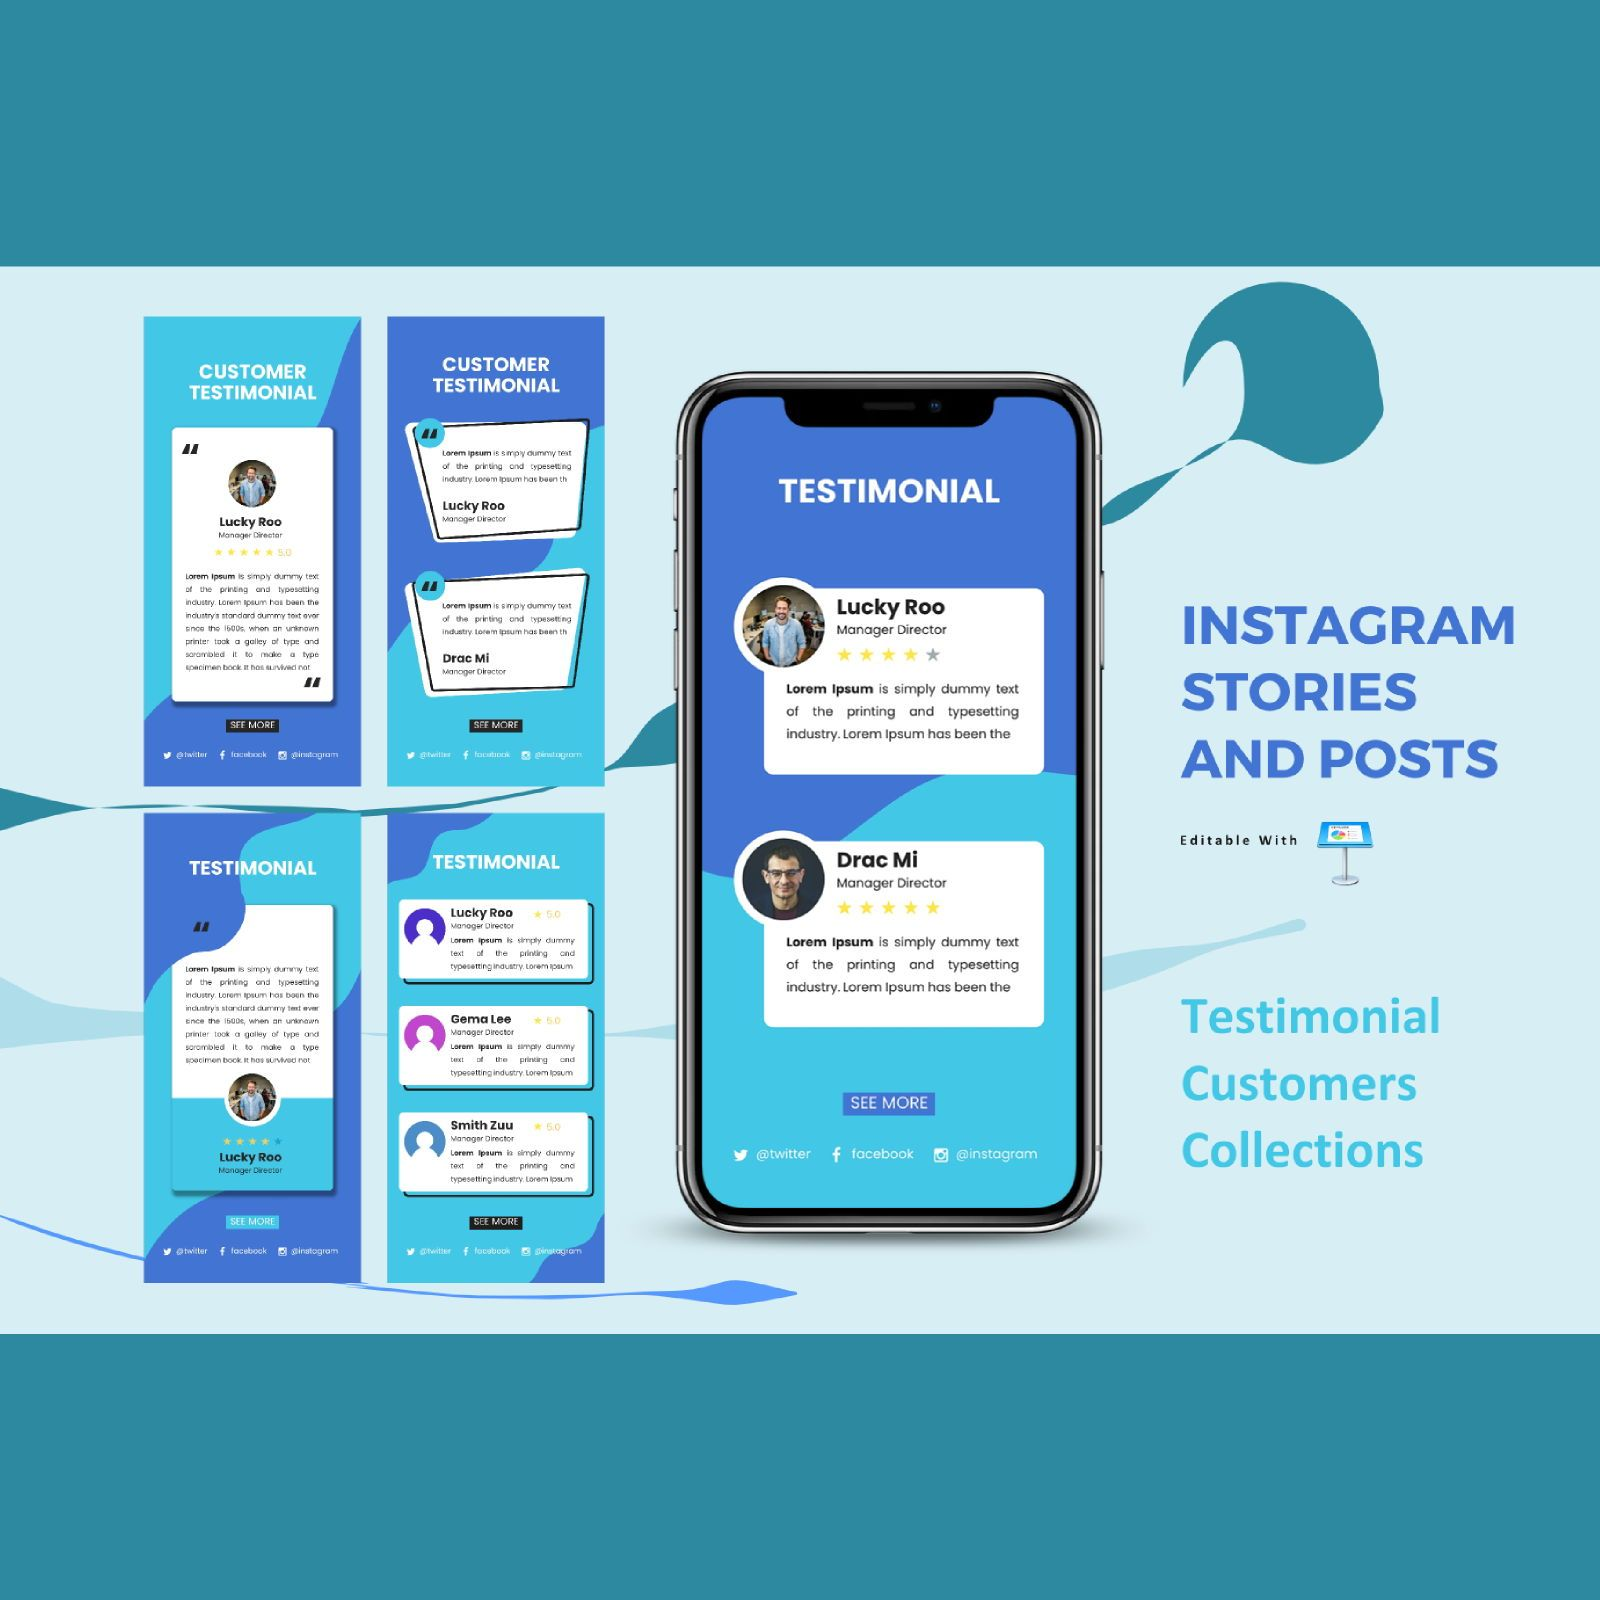 Testimonial business instagram stories and posts keynote template, 07835, Business Models — PoweredTemplate.com